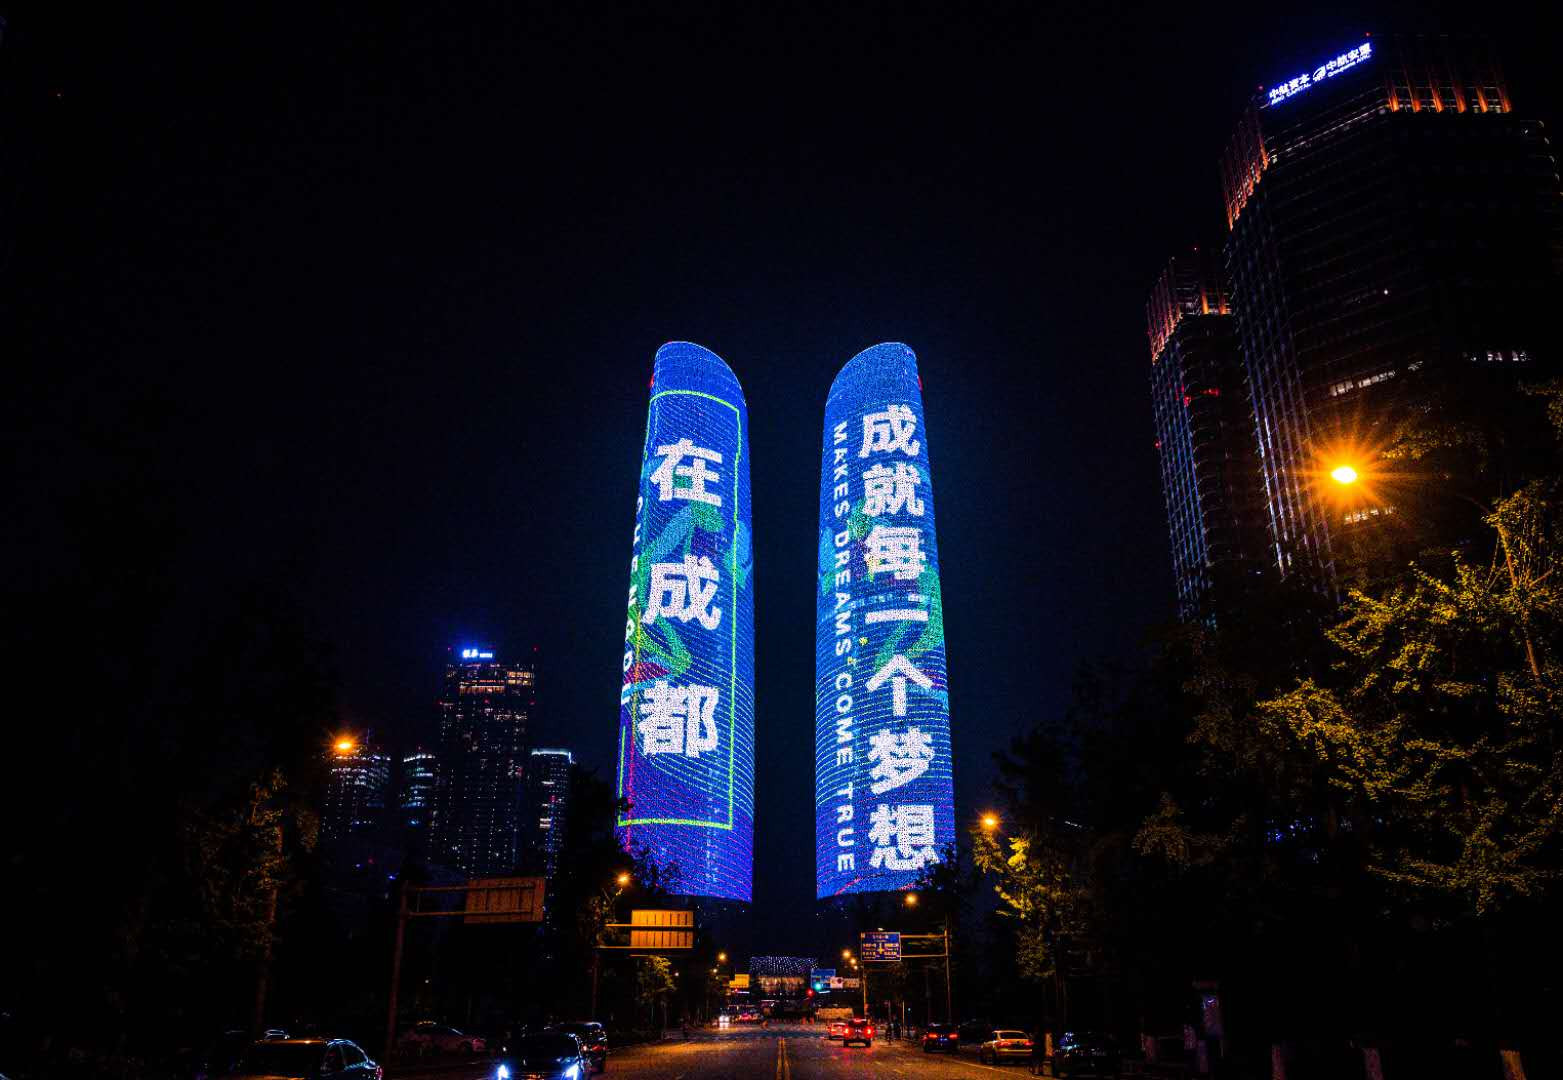 Twin towers illuminated to celebrate Chengdu 2021 sponsorship deal